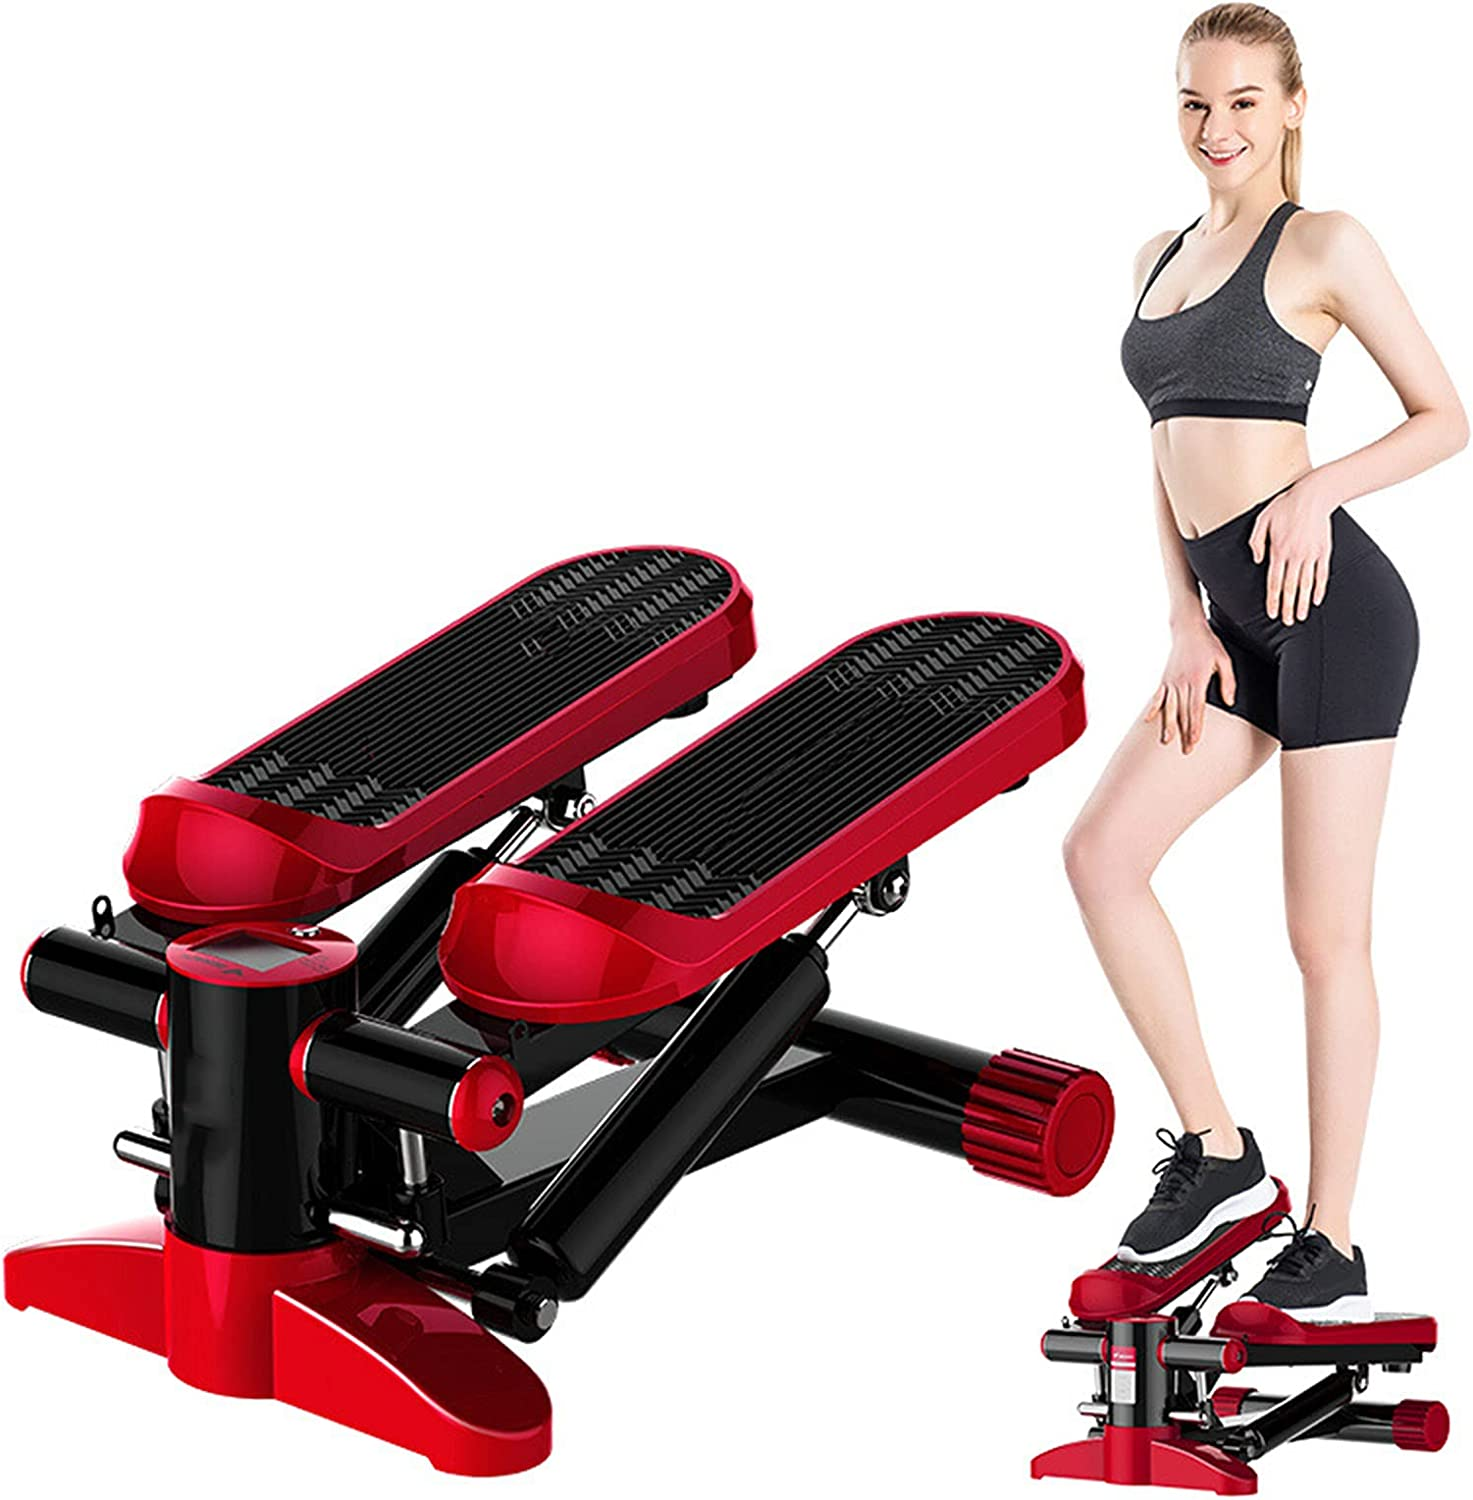 MOORRLII wholesale Elliptical Machine Home Exercise Genuine Free Shipping Trainer Compact Cross